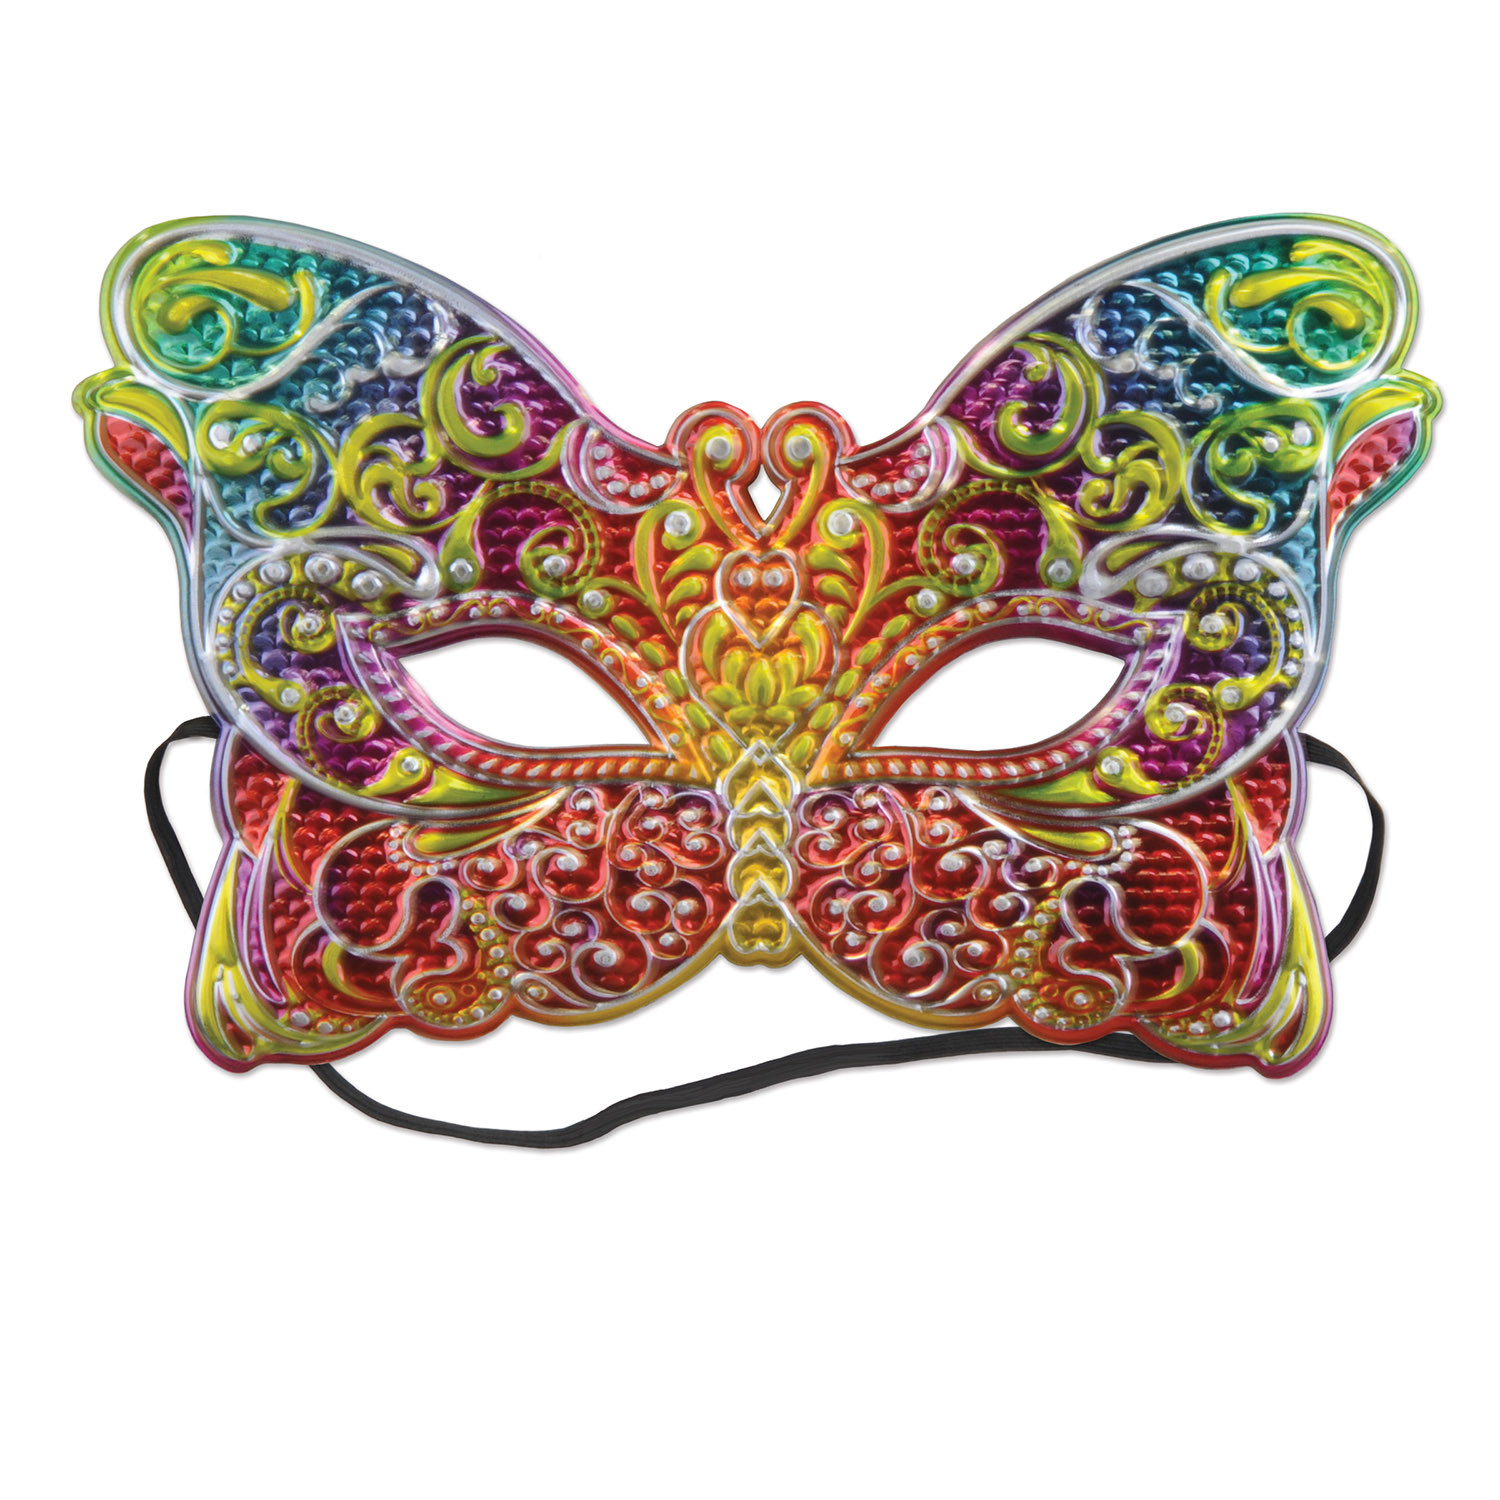 Costume Mask (Pack of 12) Costume Mask, new years eve, mardi gras, party favor, wholesale, inexpensive, bulk